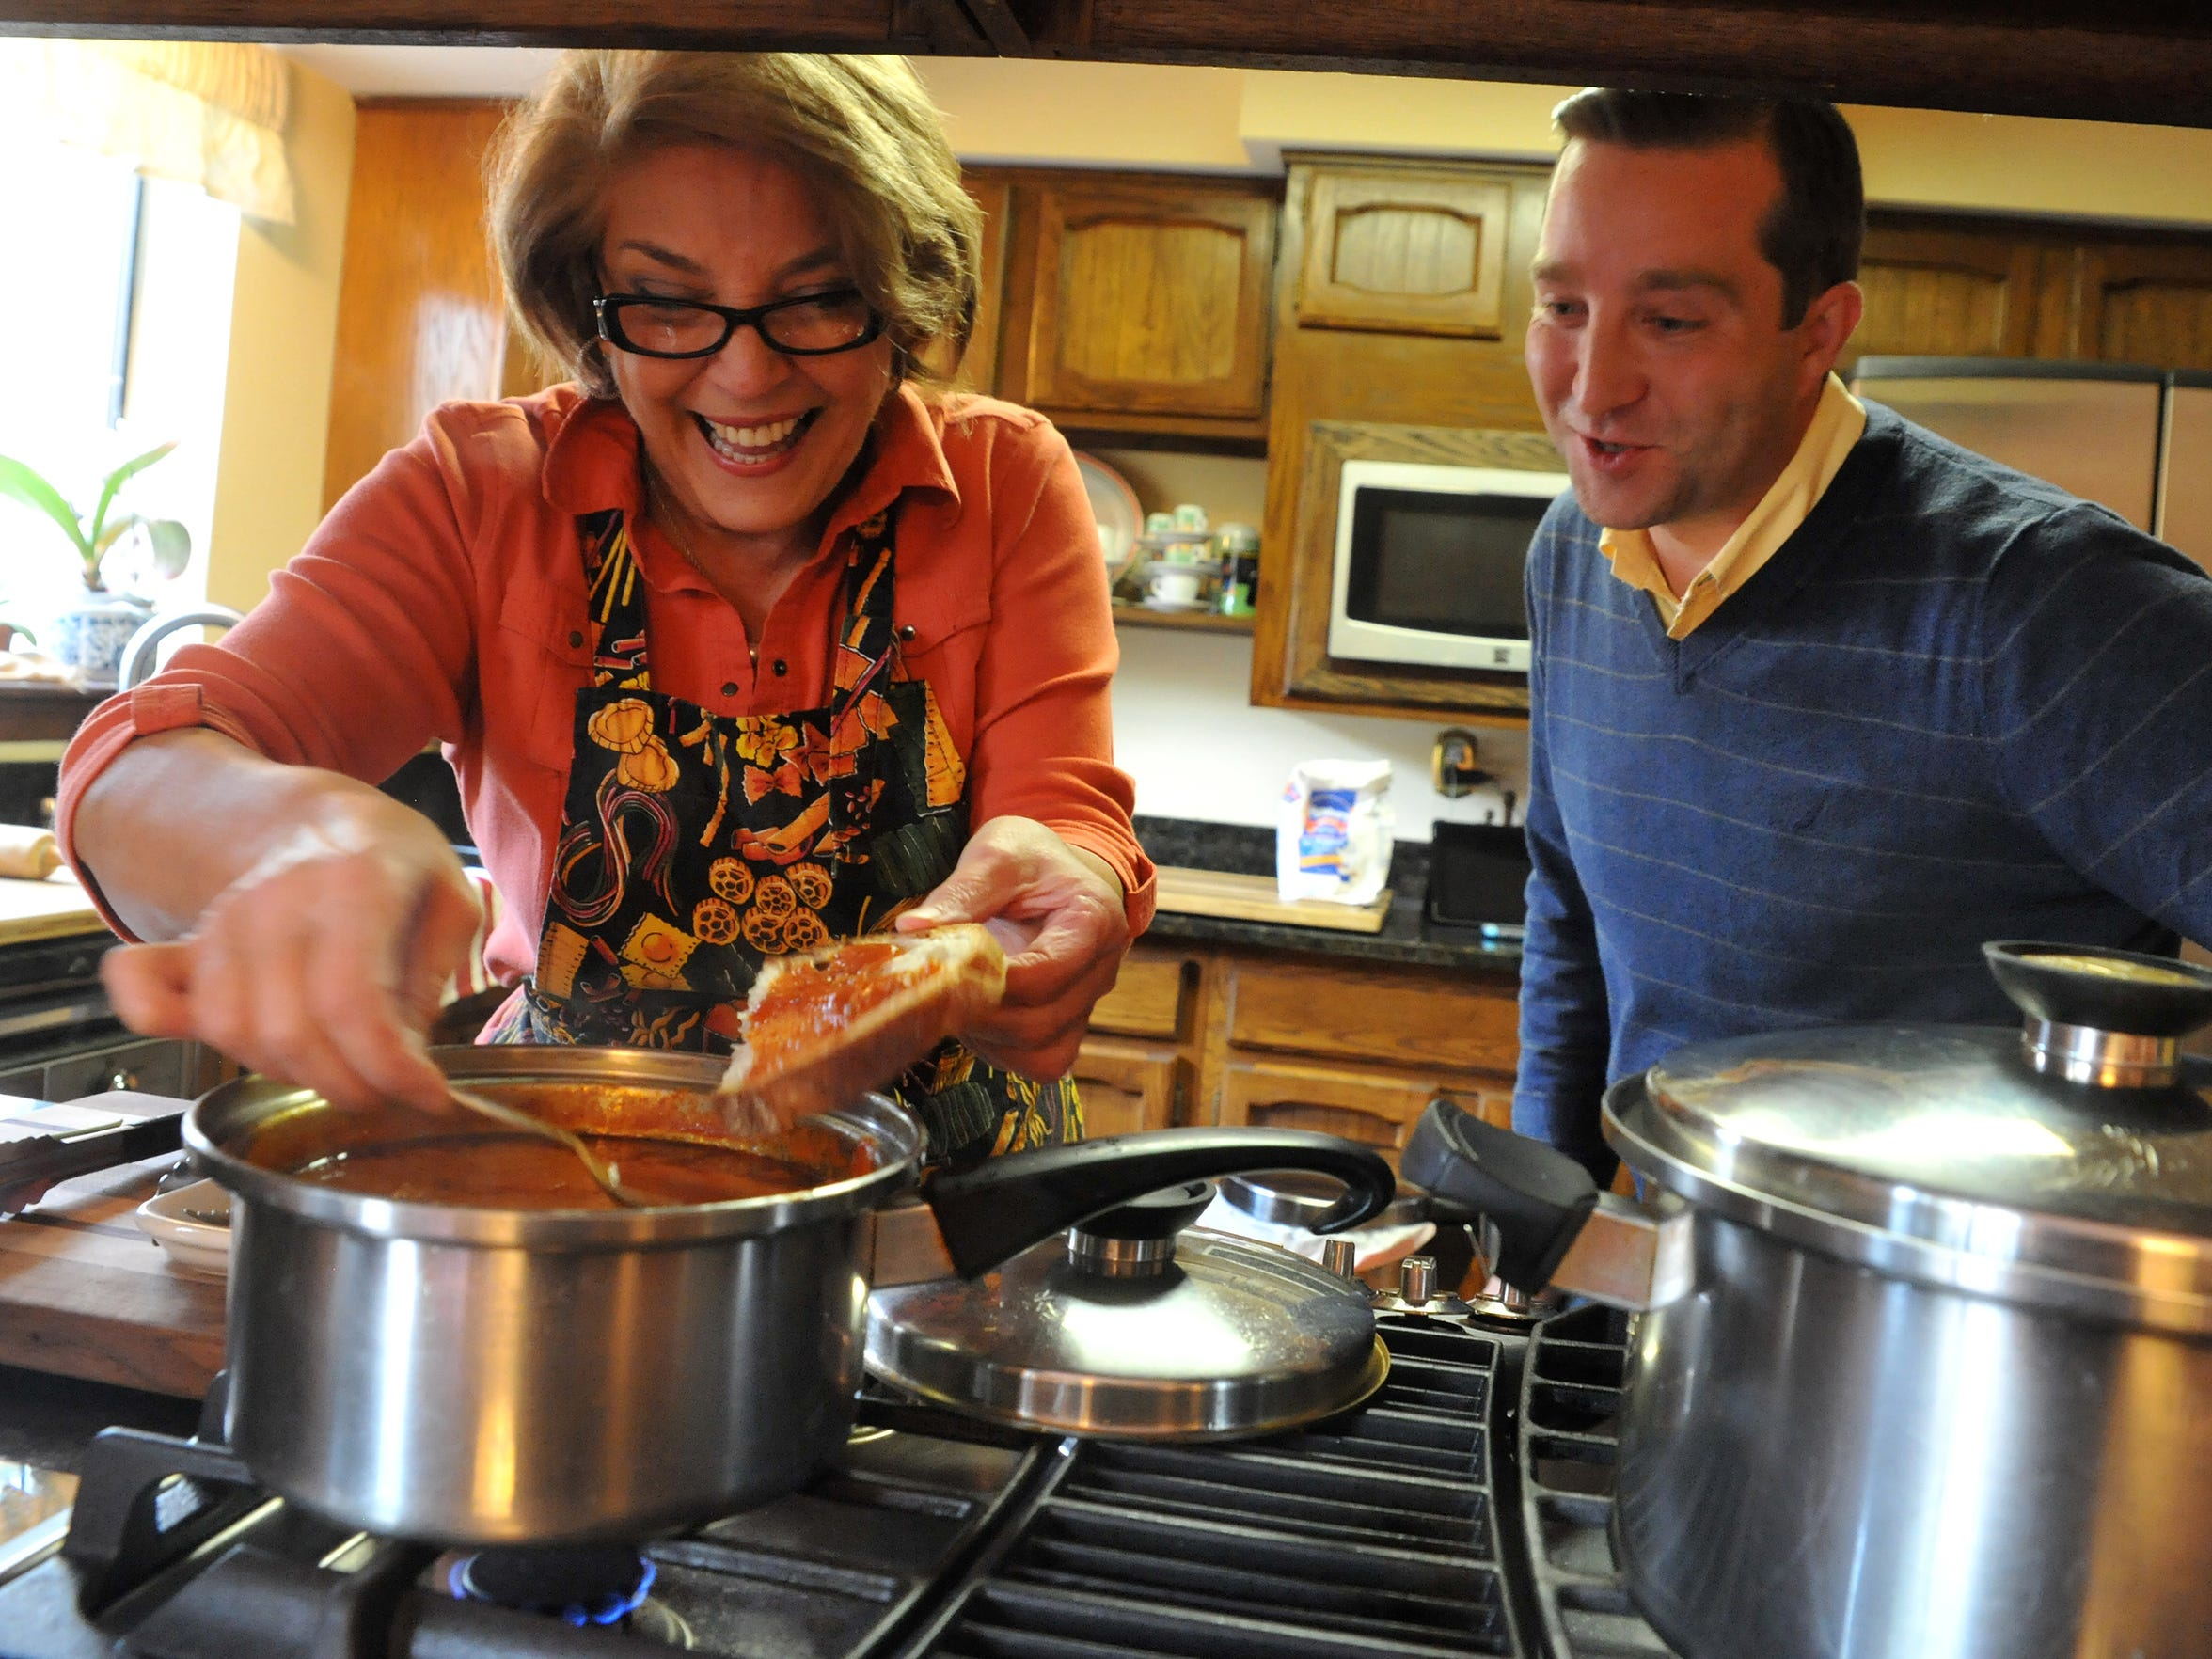 Anna DeCristofaro puts some of her homemade gravy on piece of bread for her son Giancarlo DeCristofaro, of Shamong, to snack on while she finishes making a pasta and gravy dinner for three generations of the family, Sunday,  Oct. 25 at her home in Medford.